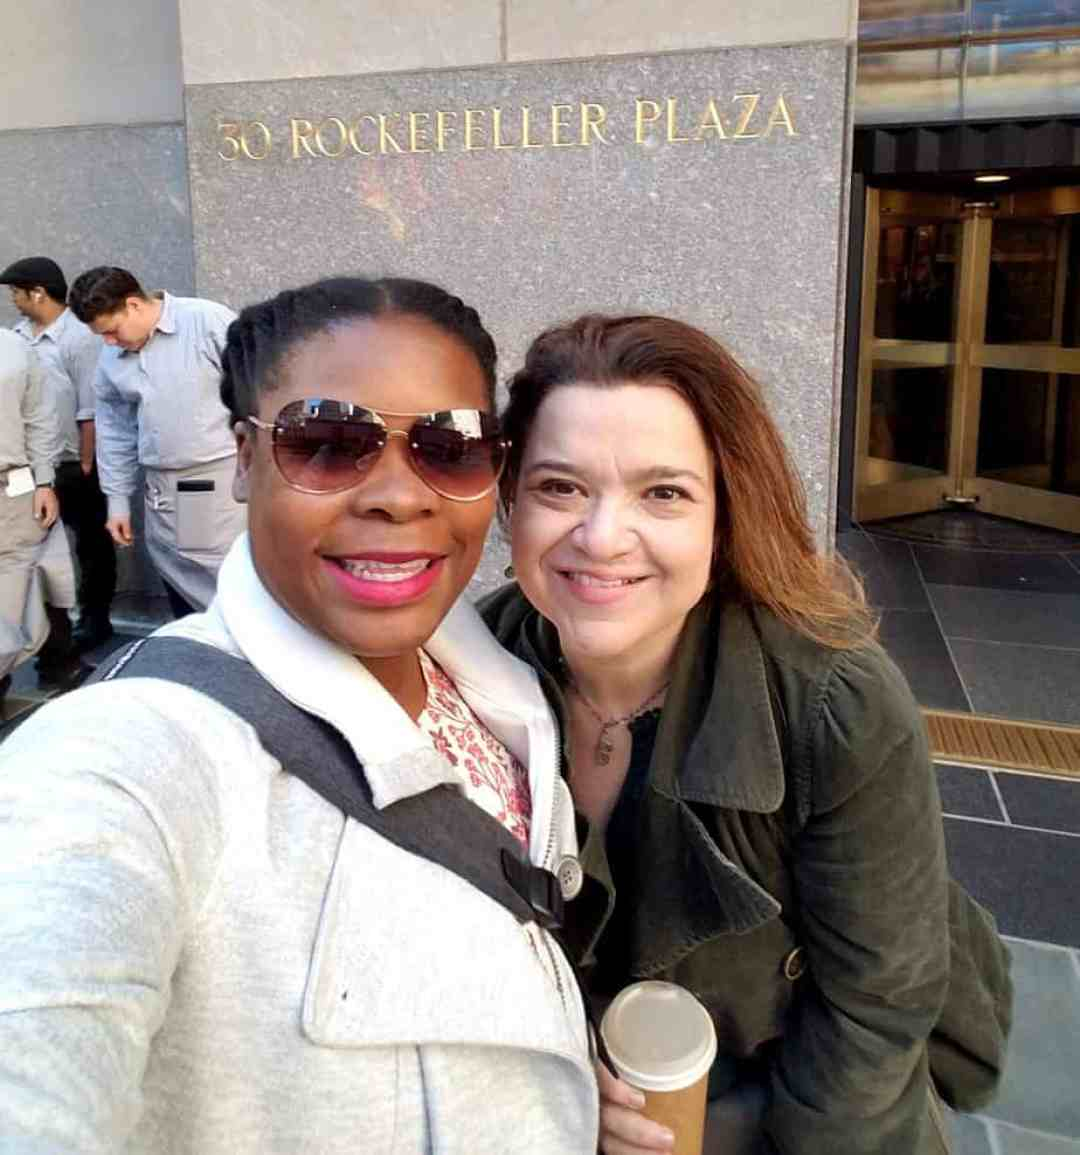 Natasha Nicholes from Houseful of Nicholes and Laurie White from Mom 2.0 standing in front of Rockefeller Plaza in New York City